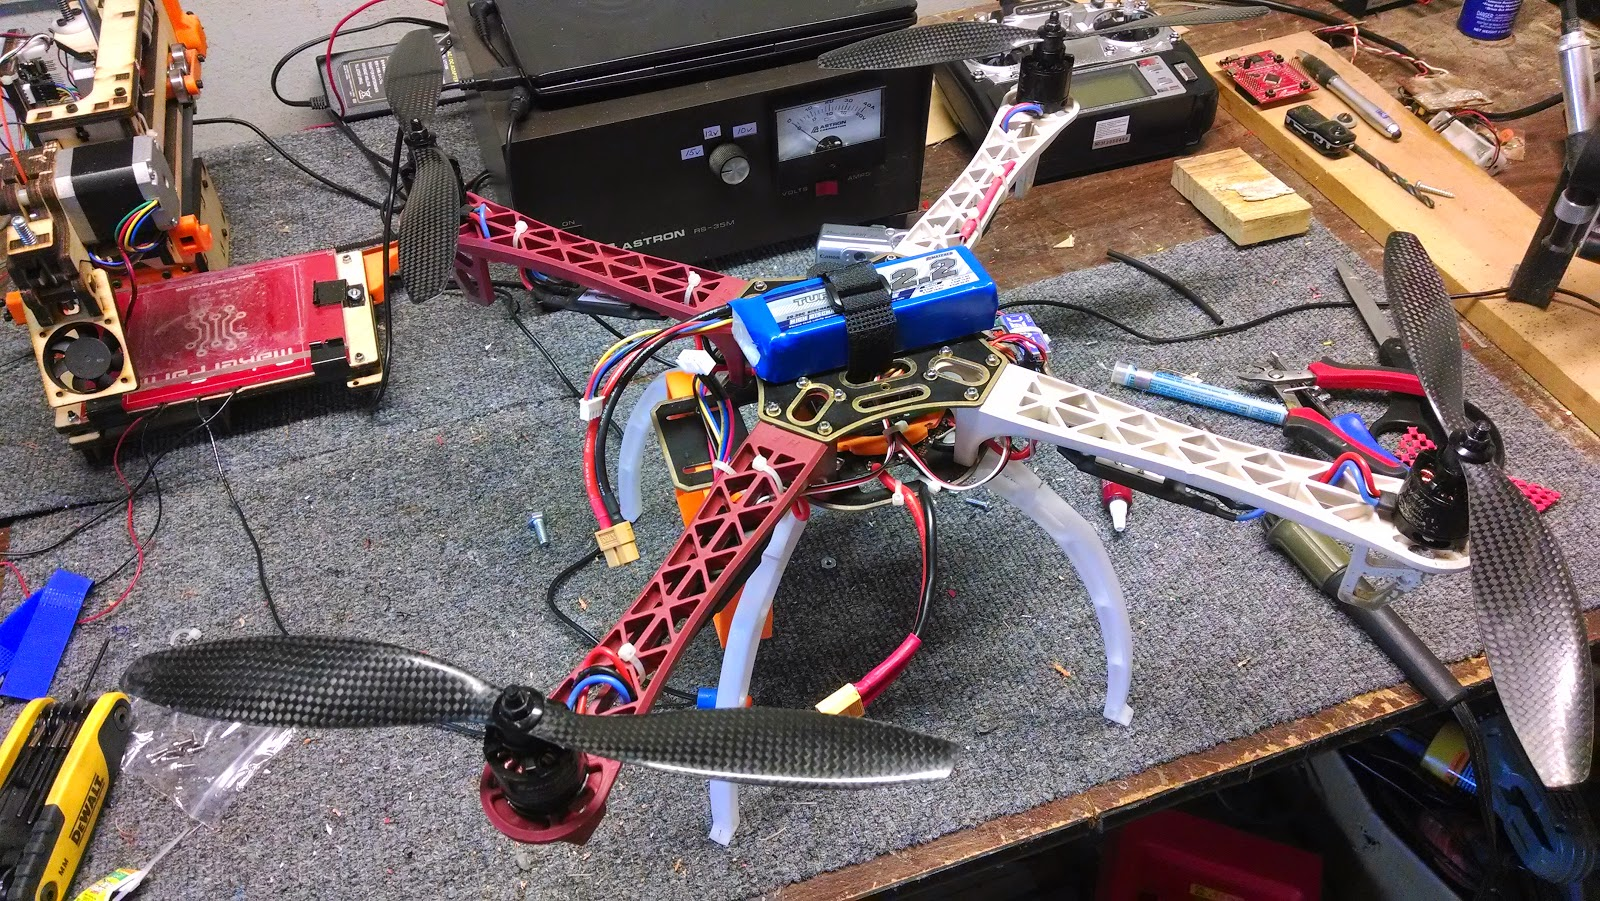 One of my ESCs was dead on arrival. I didn't find it until the kit was 90%  built. I couldn't return the whole kit, and even returning the dead ESC to  China ...